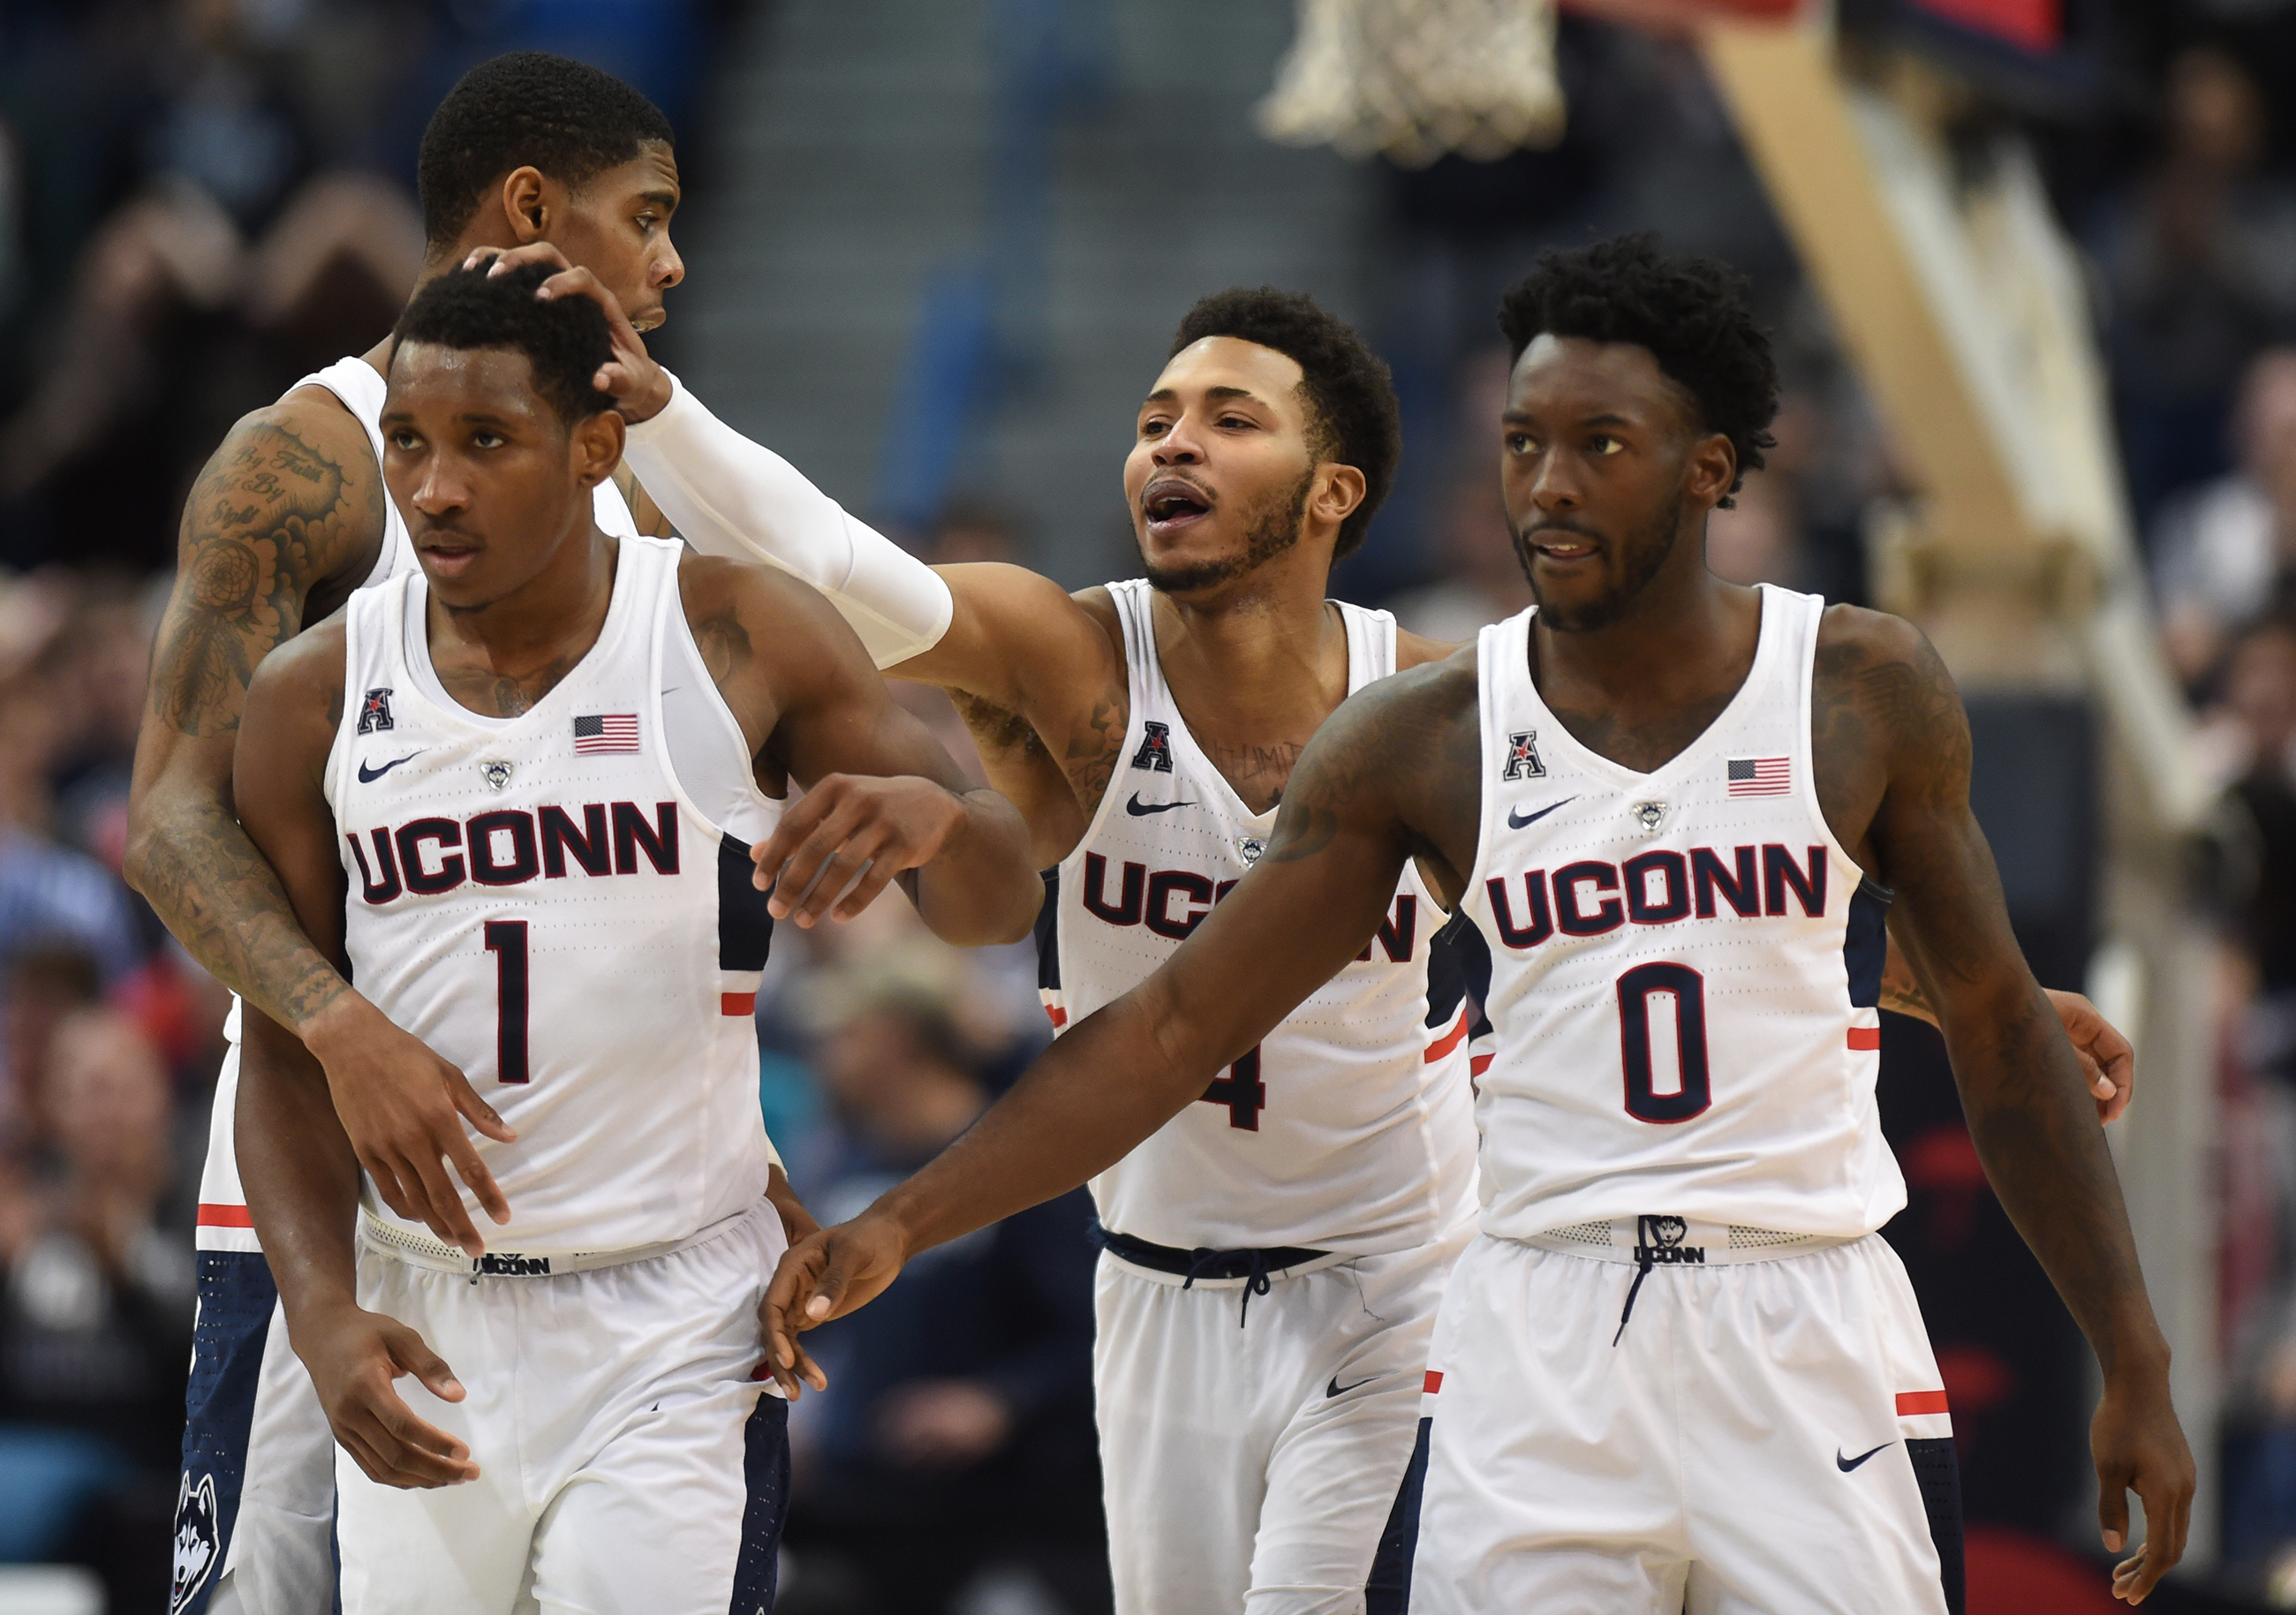 From left, Connecticut Huskies guards Christian Vital (1), Jalen Adams (4) and Antwoine Anderson (0) react near the conclusion of a victory over Monmouth at the XL Center Saturday, Dec. 2, 2017 in Hartford, Conn. The Huskies beat the Hawks 84-81 in overtime. (Brad Horrigan/Harford Courant/TNS)